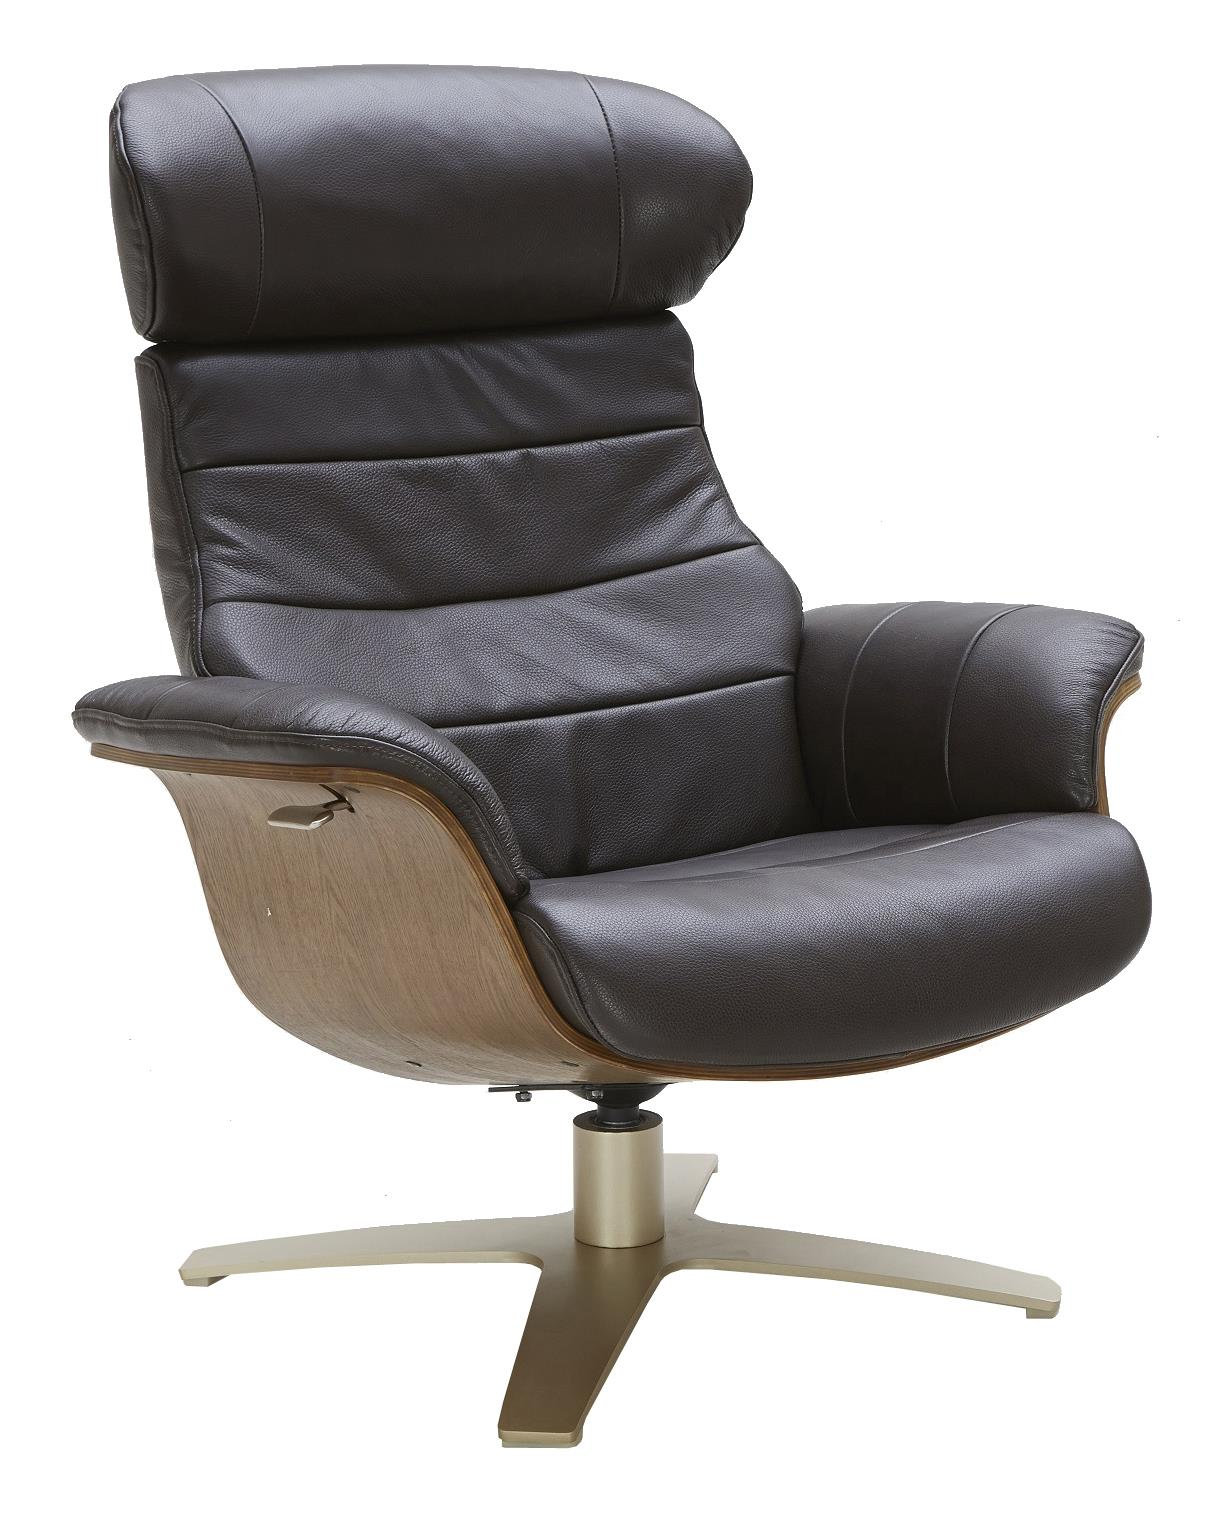 Urban Evolution Karma Leather Lean-Back Swivel Chair - Item Number: A928-1-2a-S